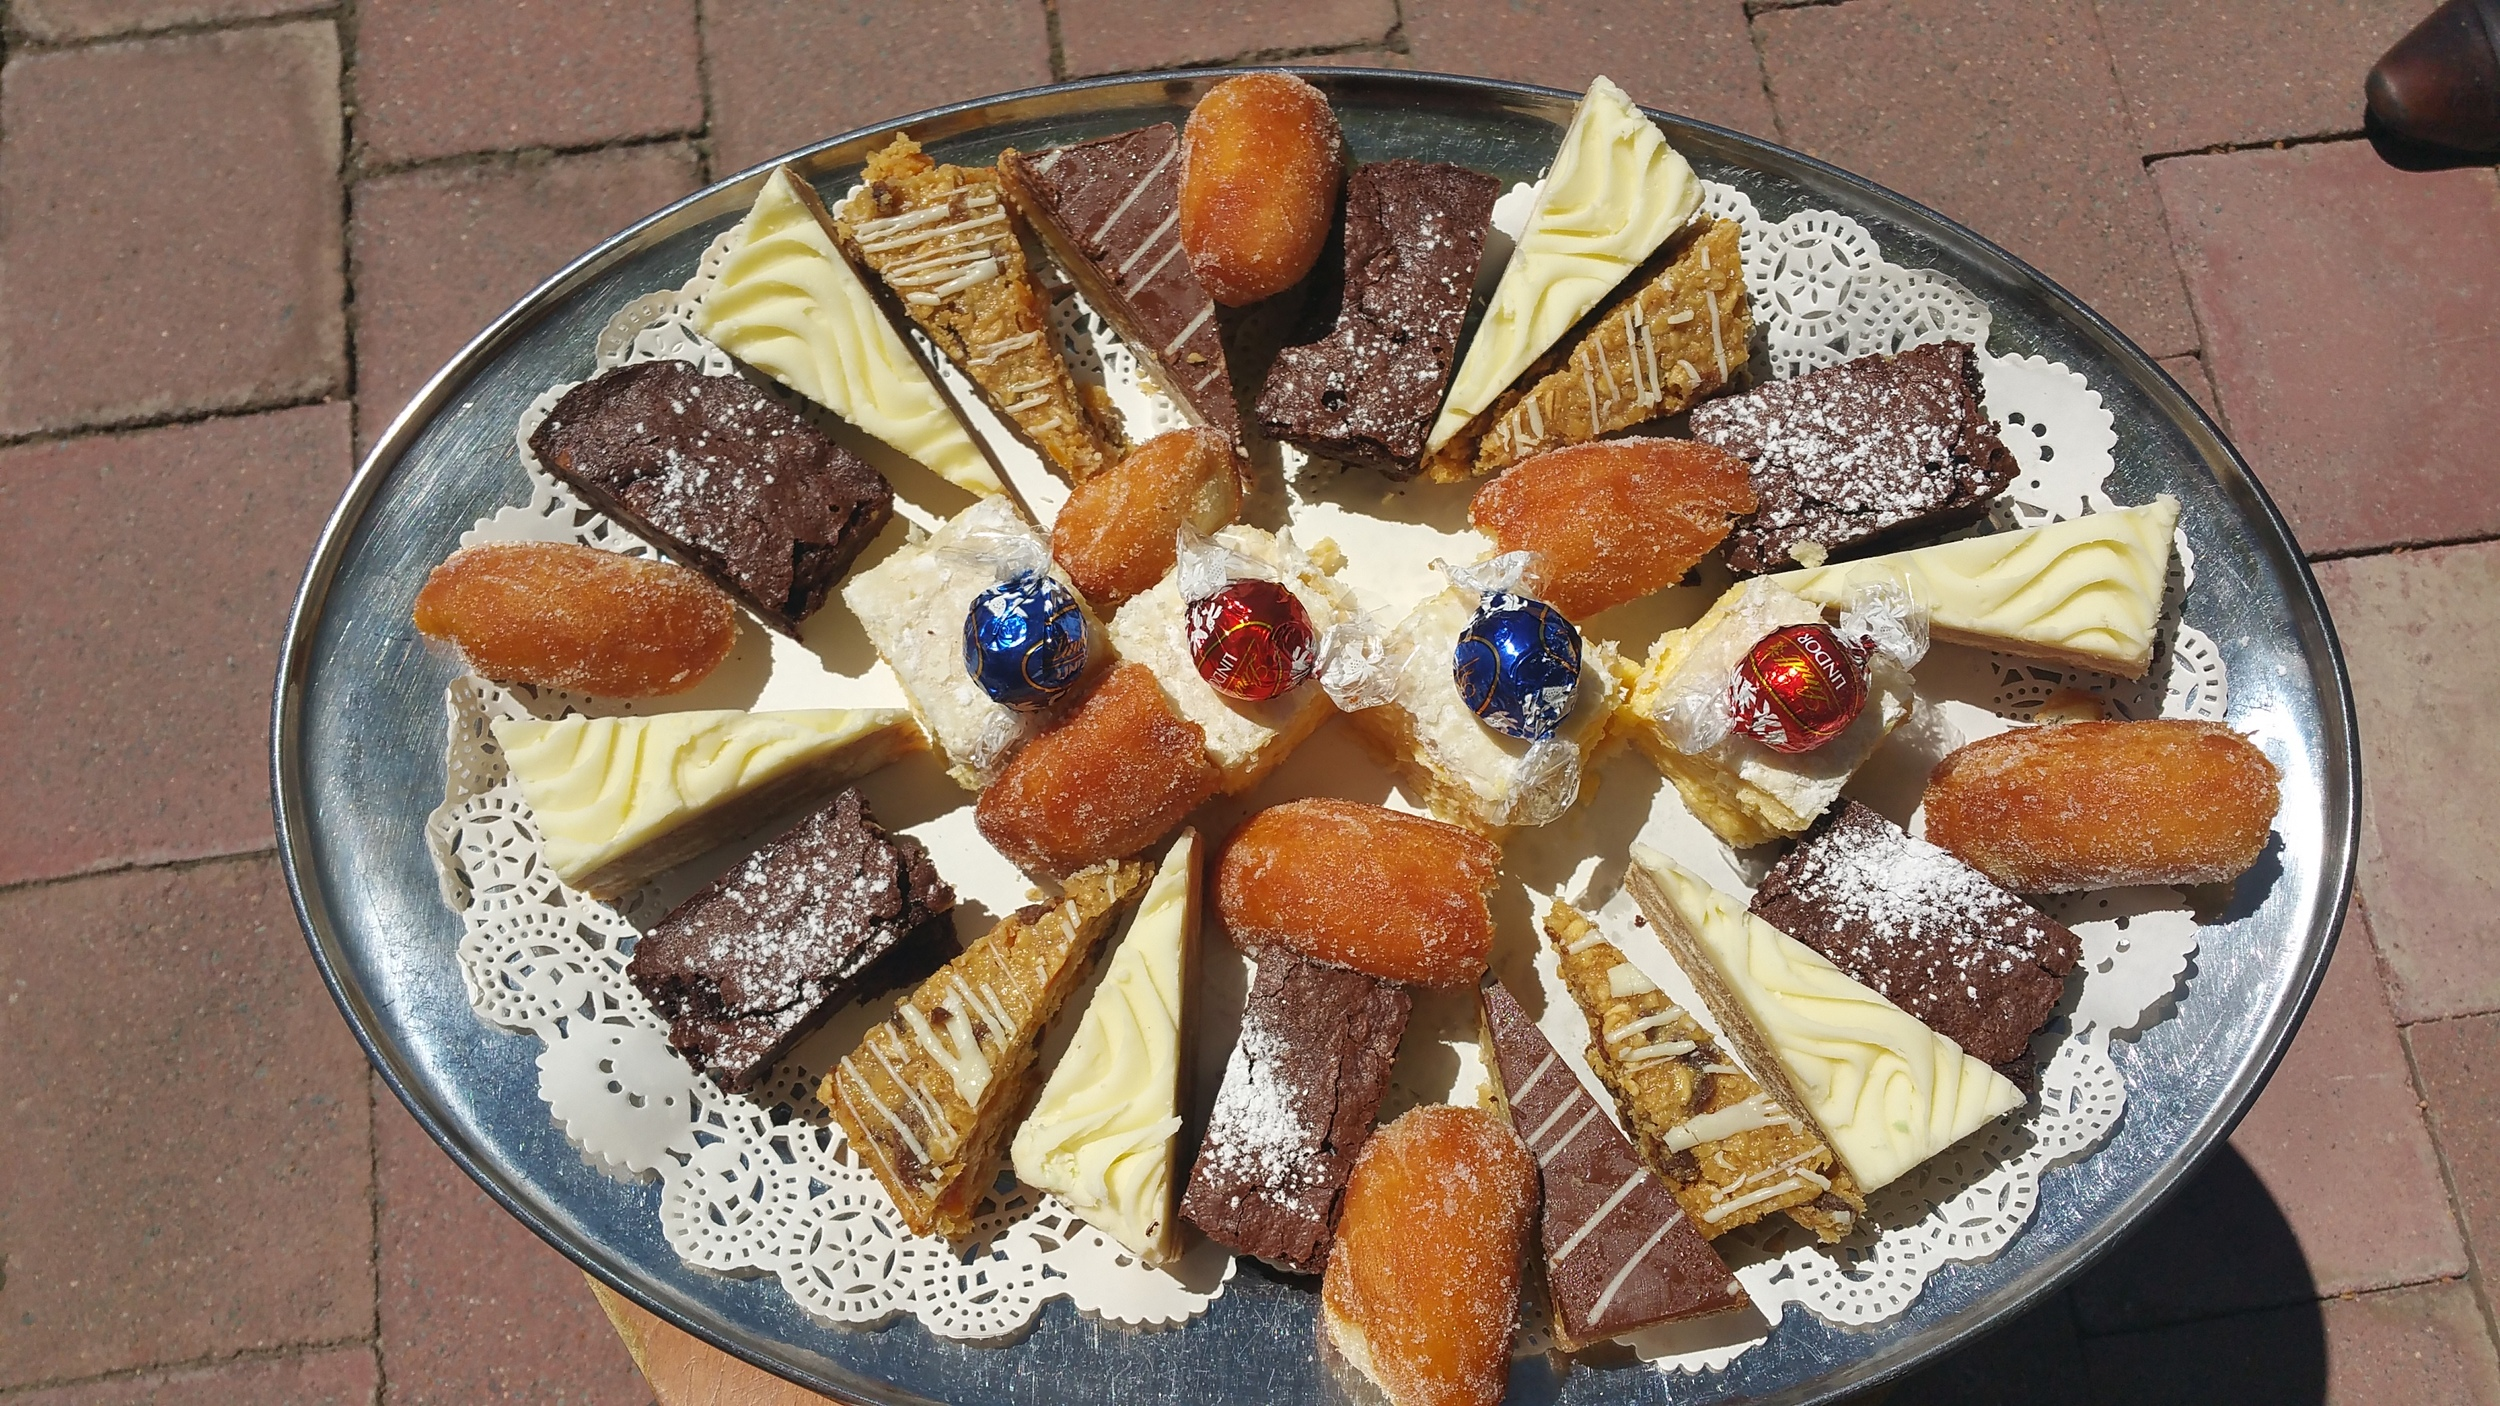 Cakes, Slices & Chocolates Platter